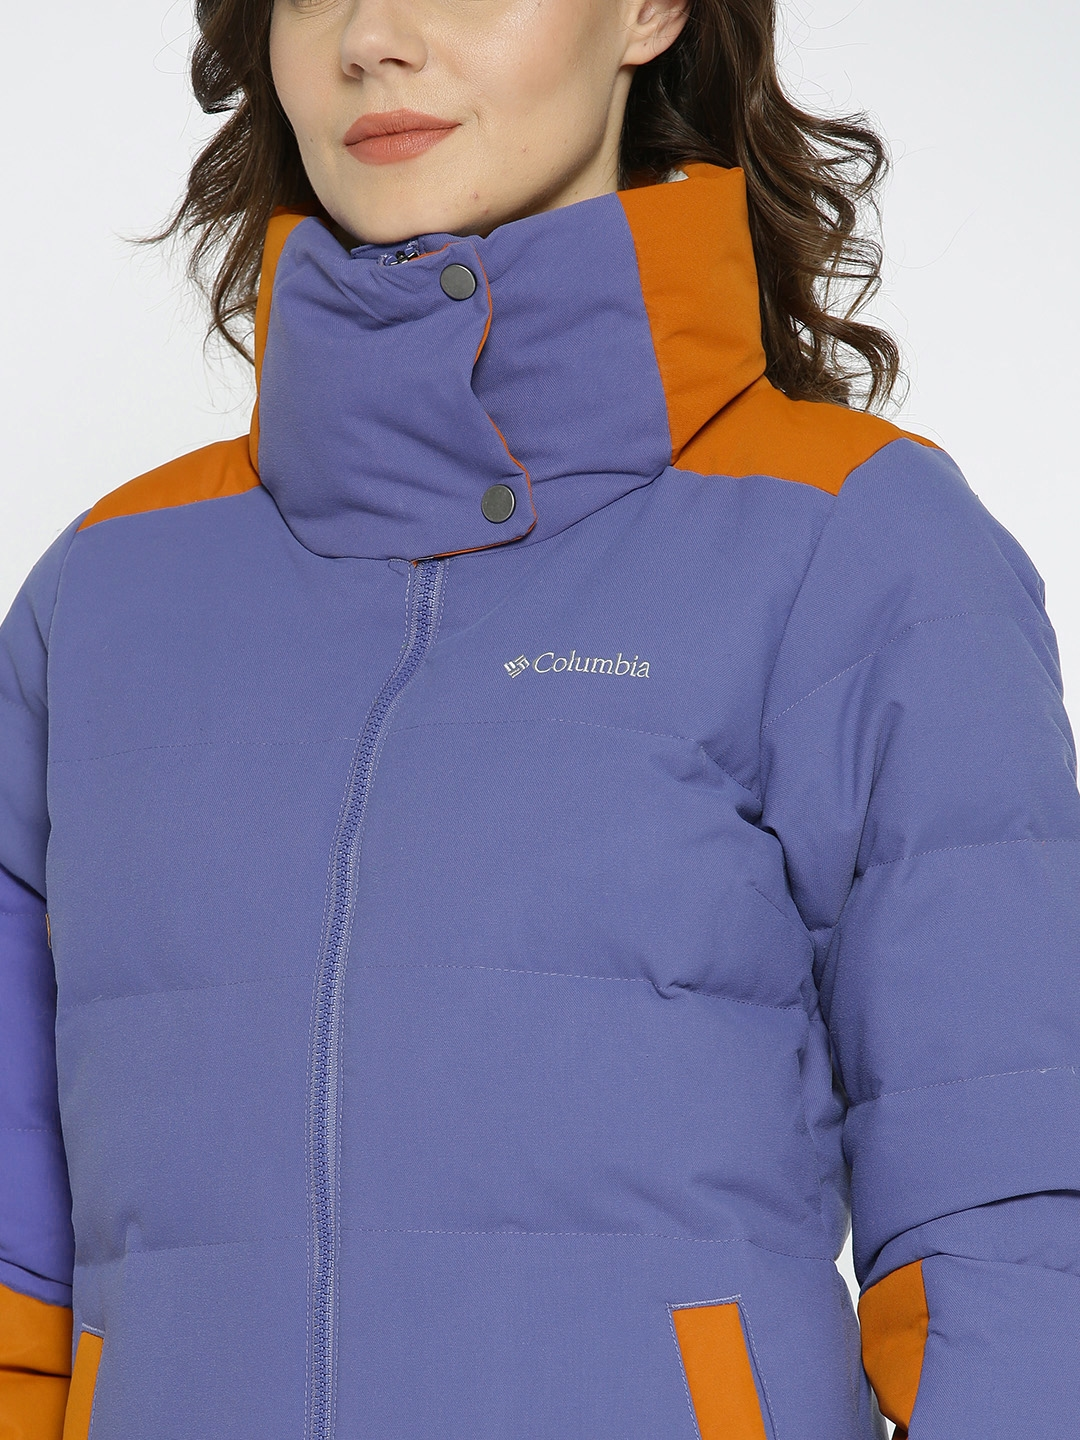 Buy Columbia Women Violet Solid Water Resistant Padded Jacket ... 310ea3916